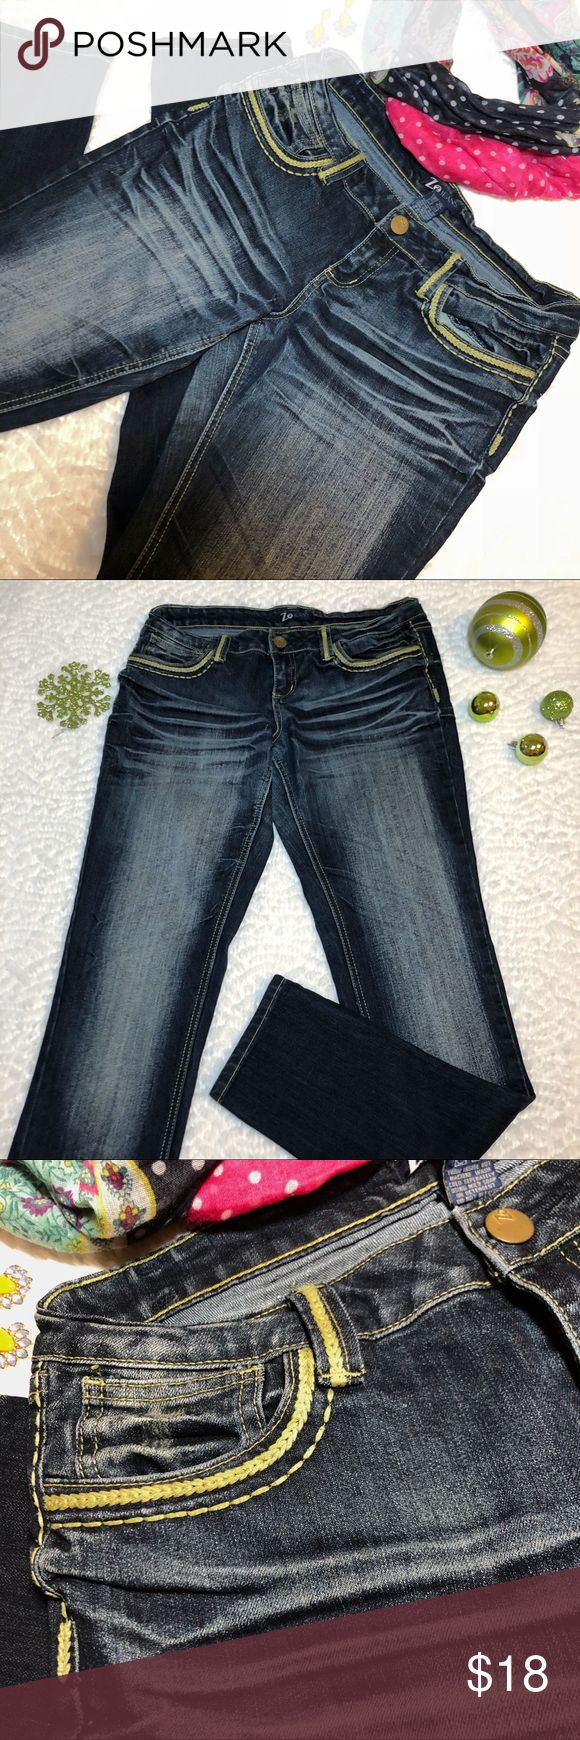 NWOT Z2 Skinny Jeans New condition • 65% cotton / 33% polyester / 1% spandex Z2 Jeans Jeans Skinny